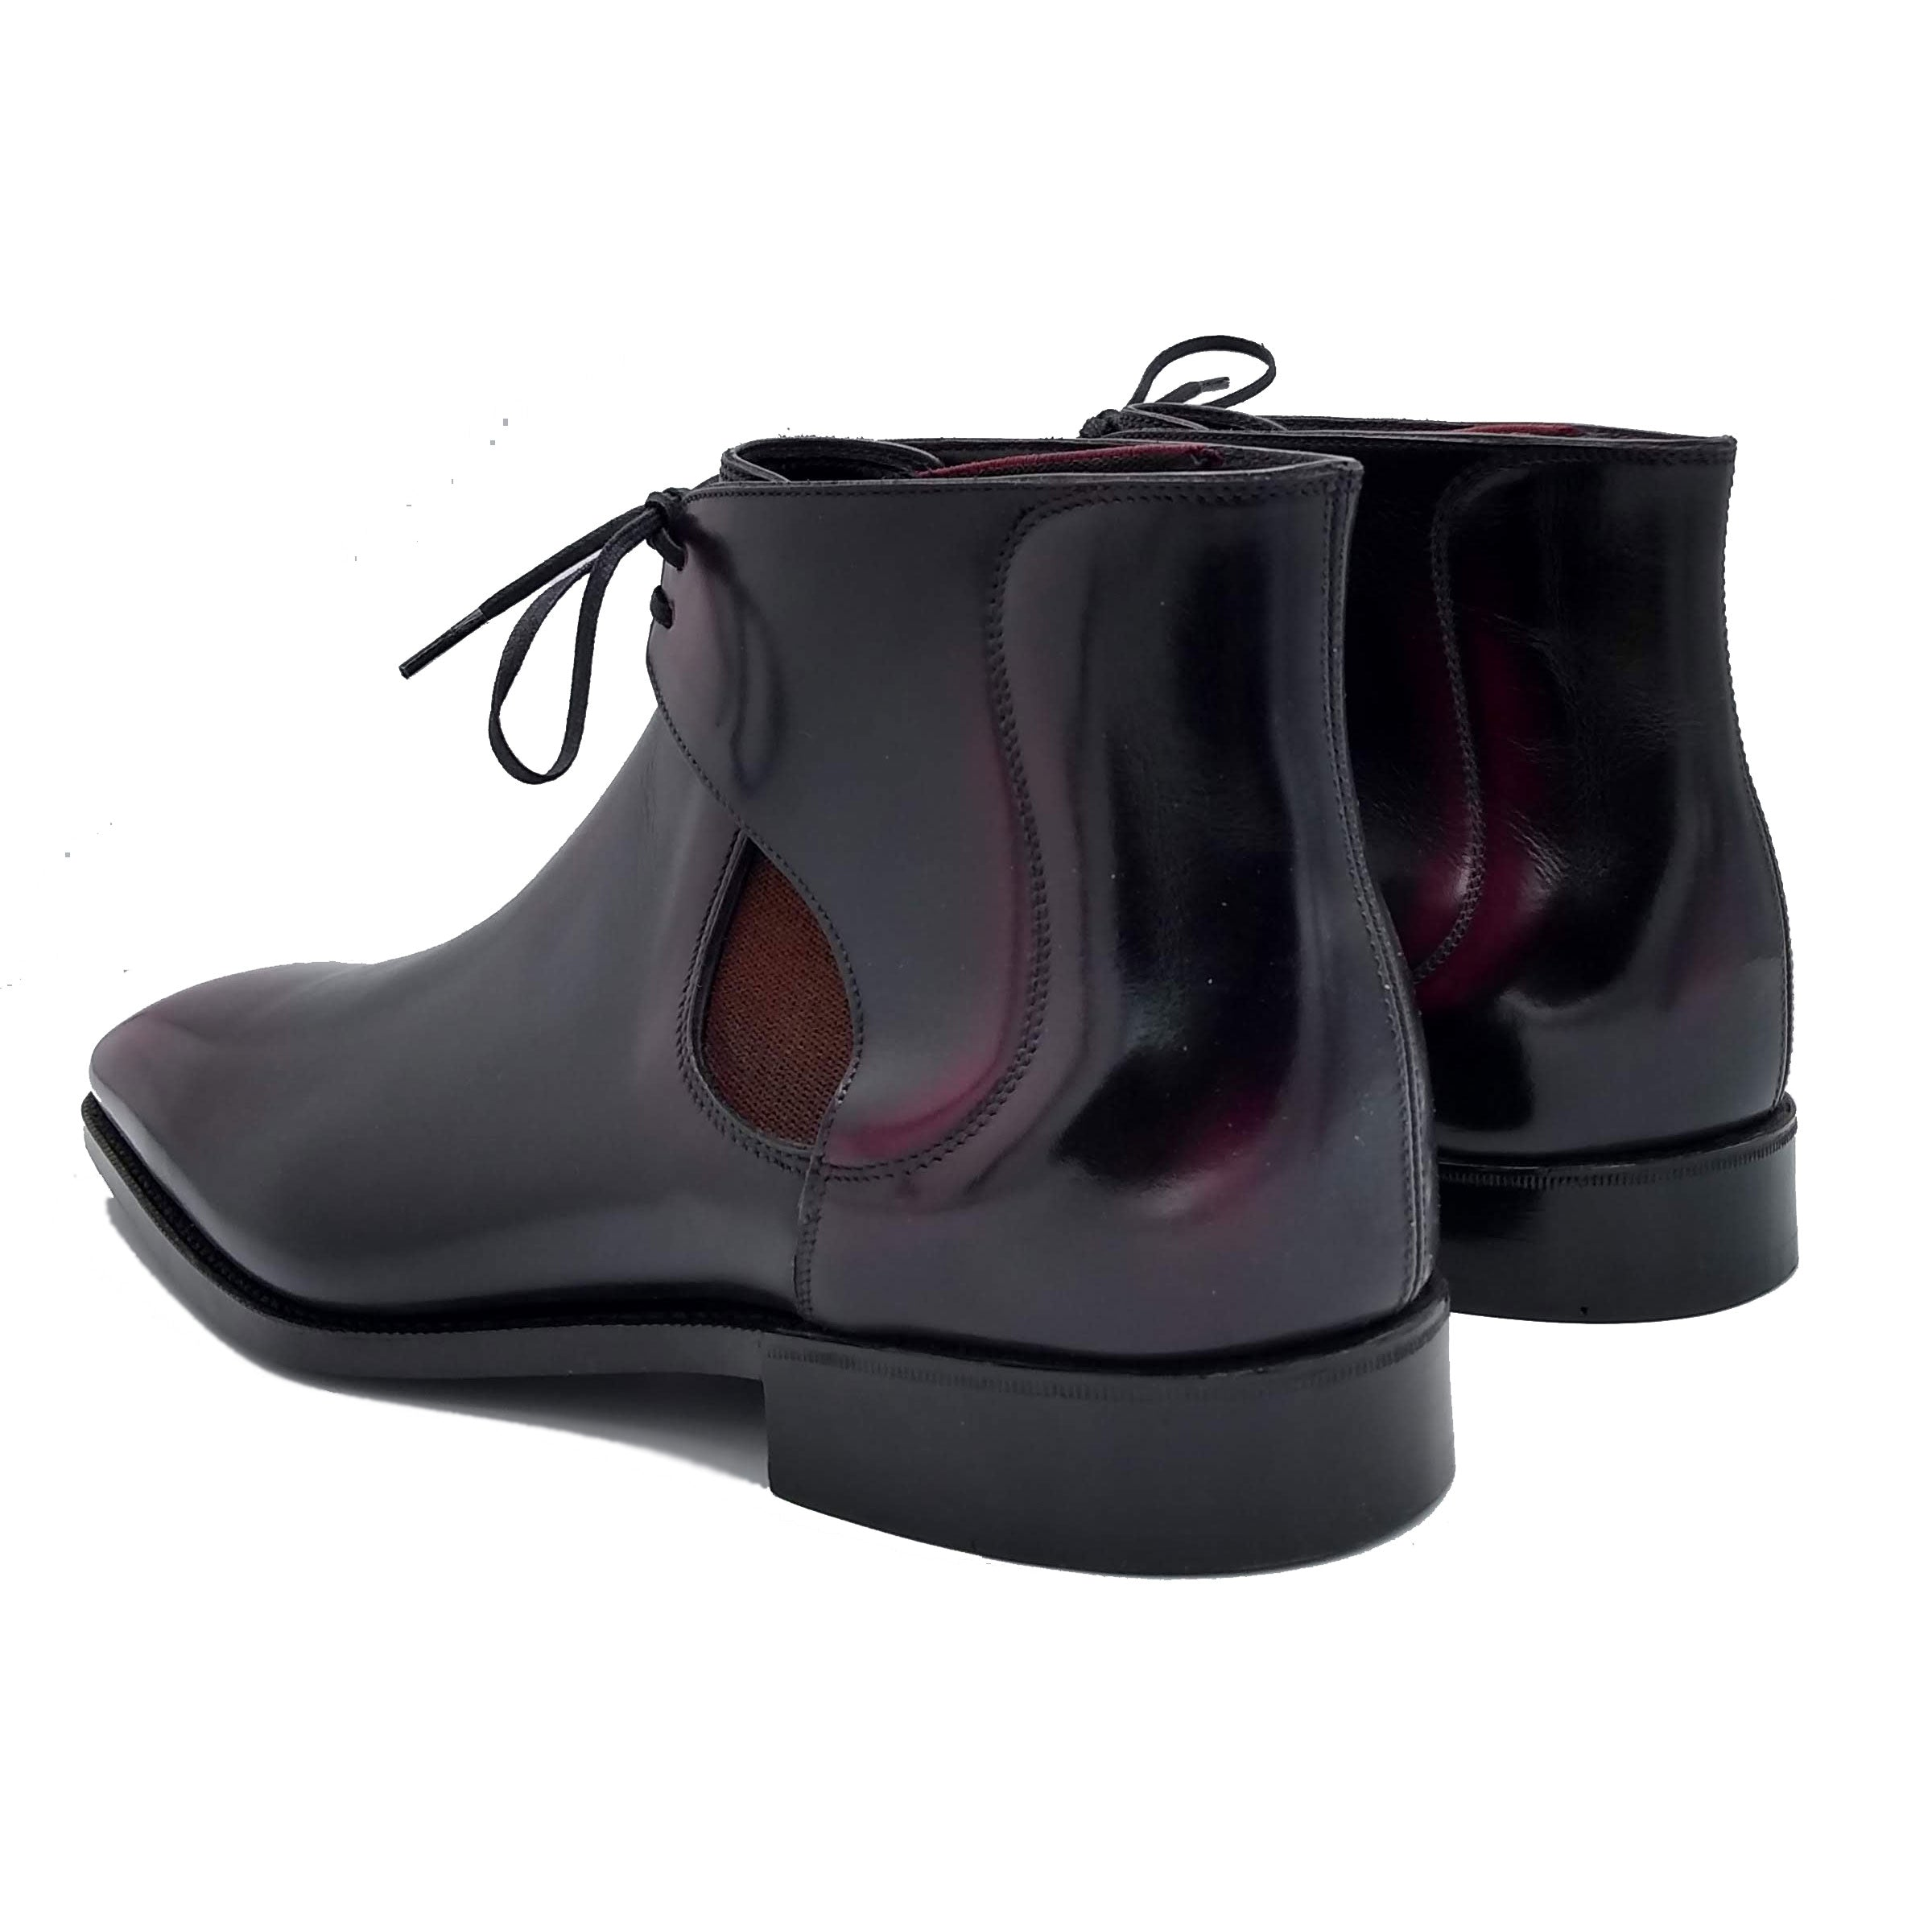 Men's leather decon chelsea boots made in Spain